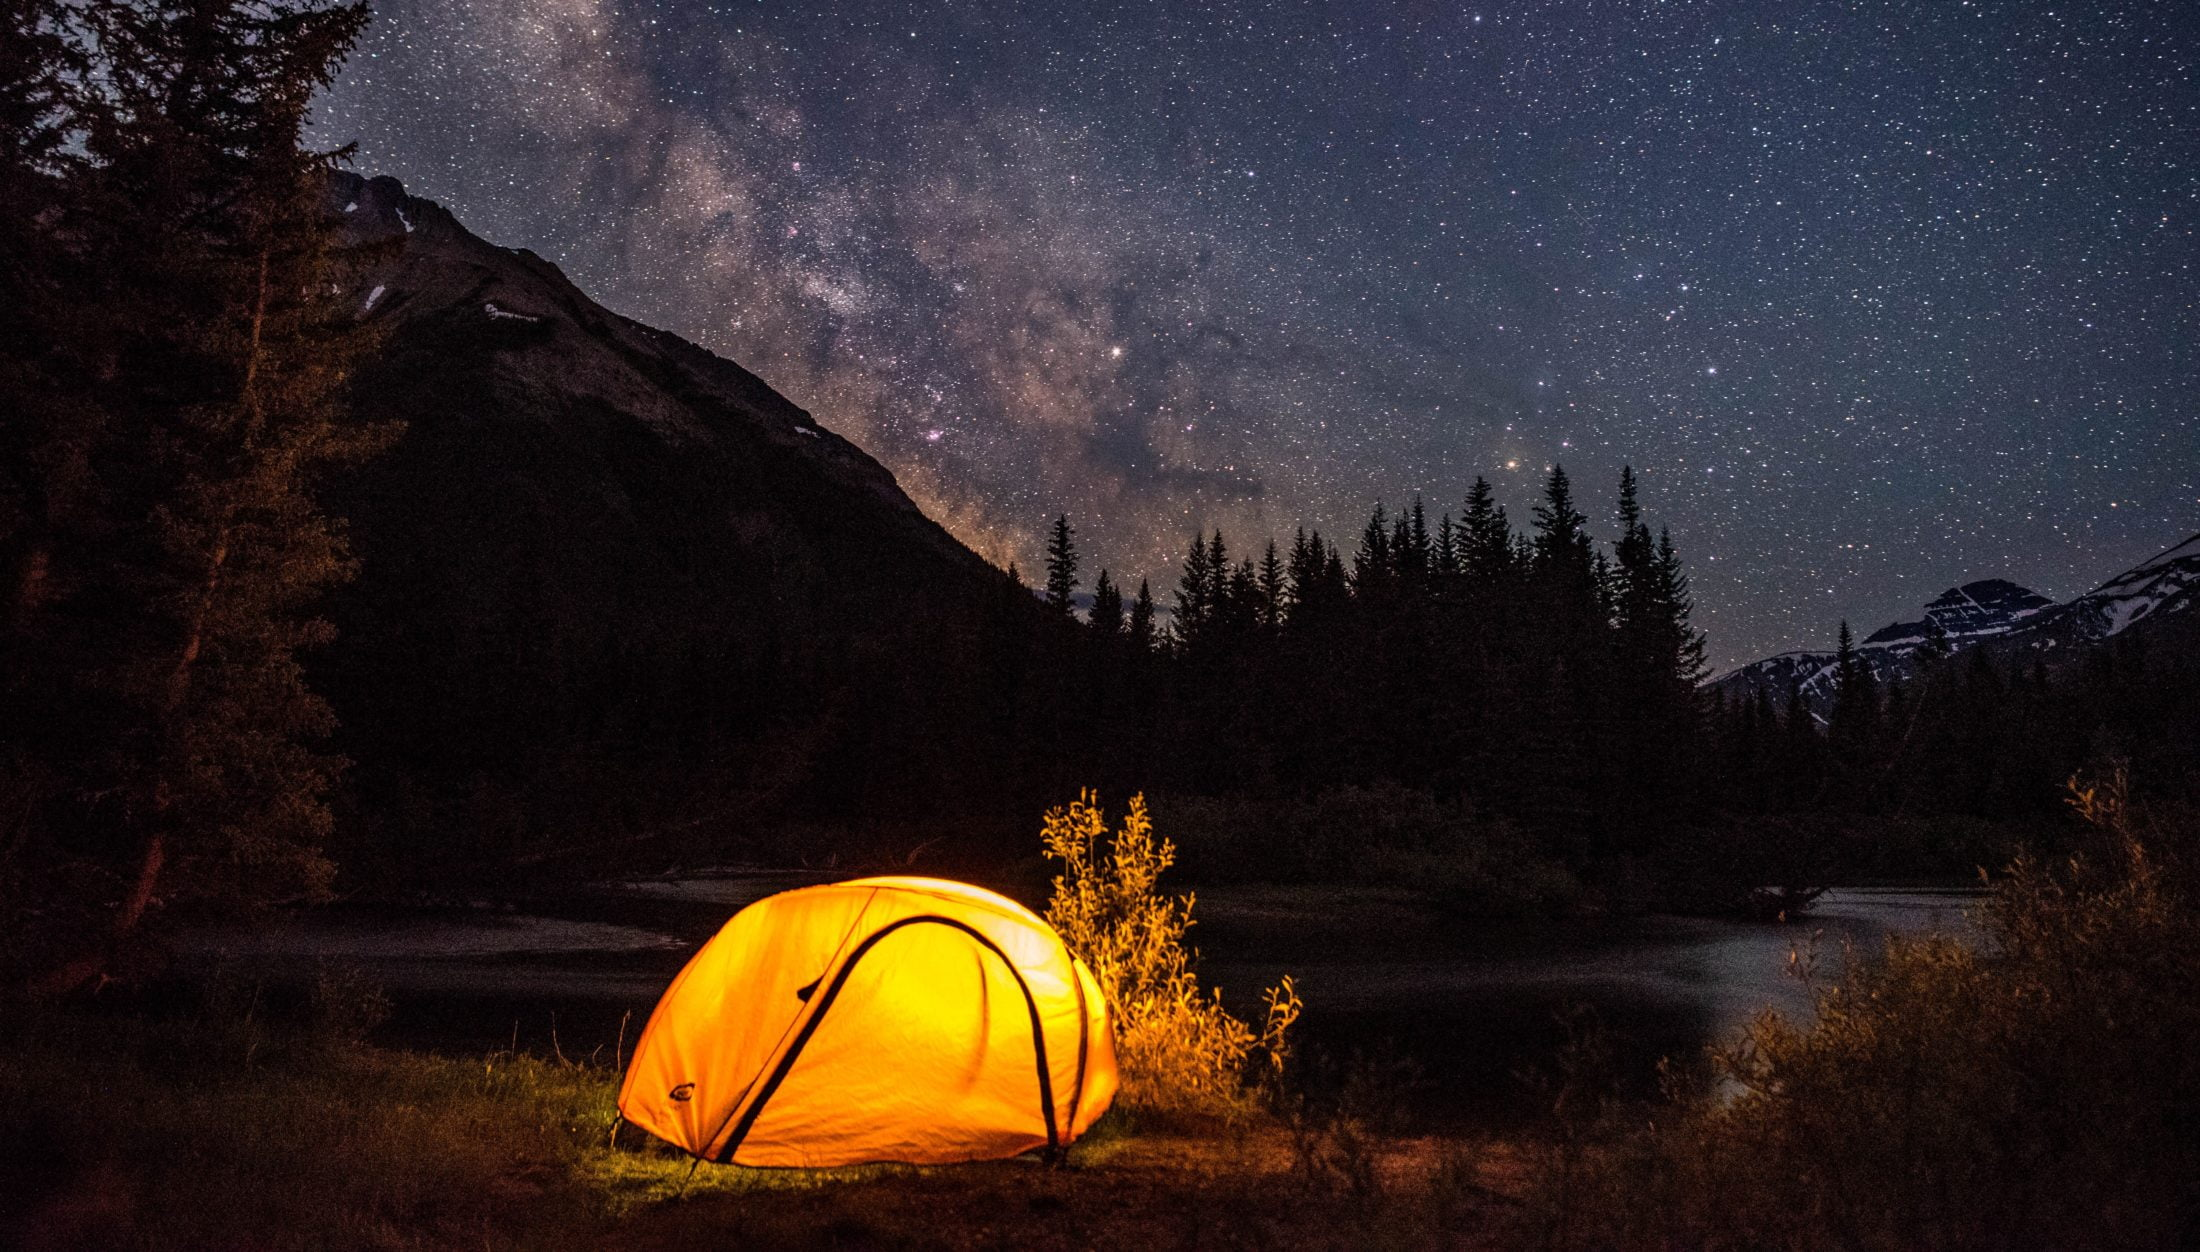 A Tent Glowing Under A Starry Night Sky, With A Mountain And Trees In The Background.